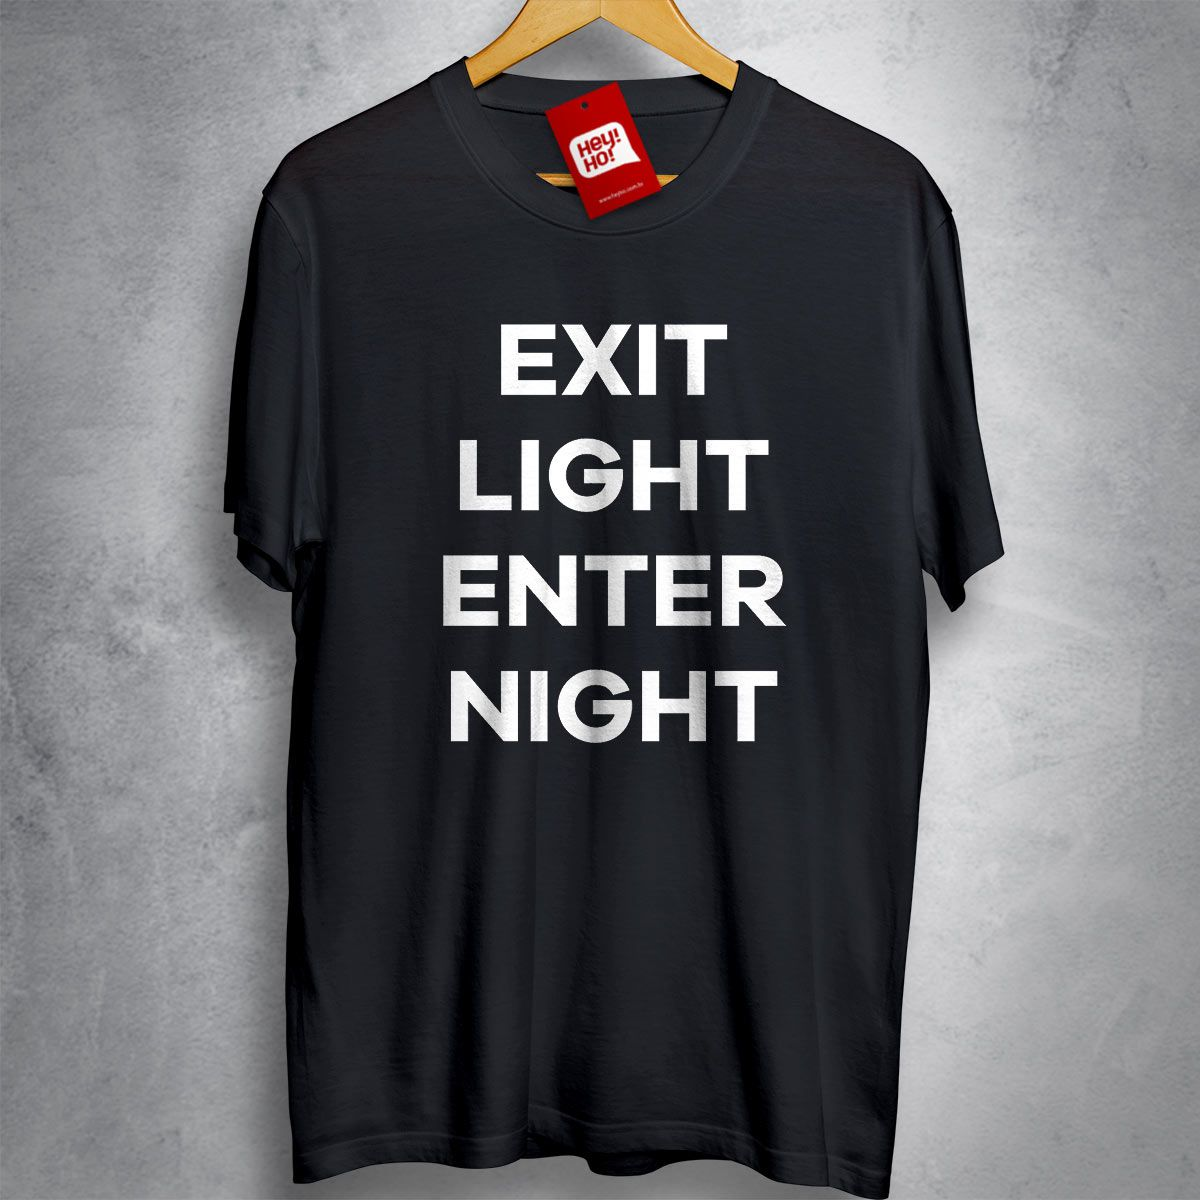 METALLICA - Exit light Enter night